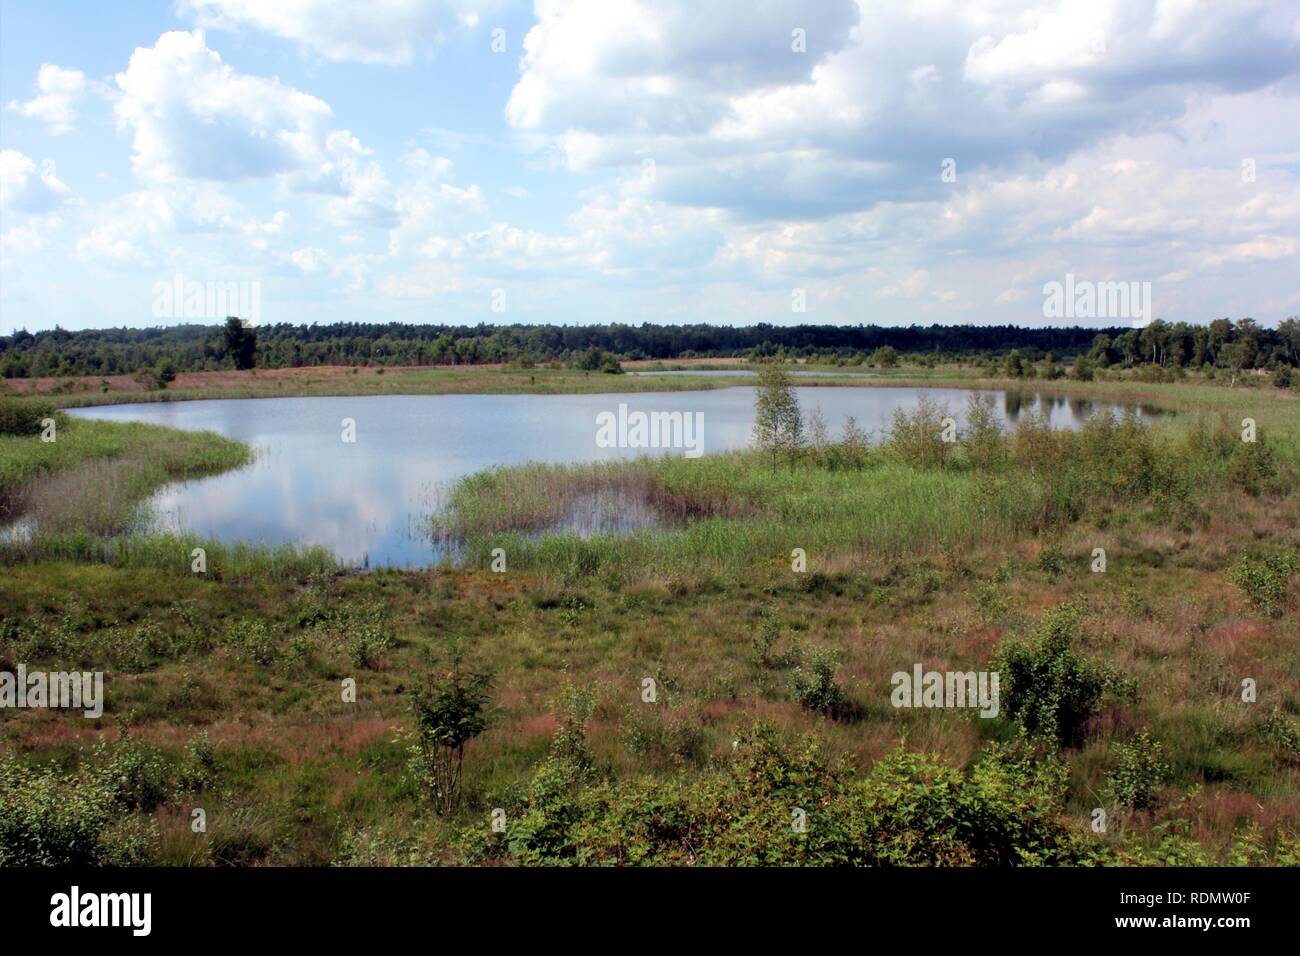 A large bog pool in the Gildehauser Venn, a raised bog nature reserve in the west of Lower Saxony, Germany. Stock Photo